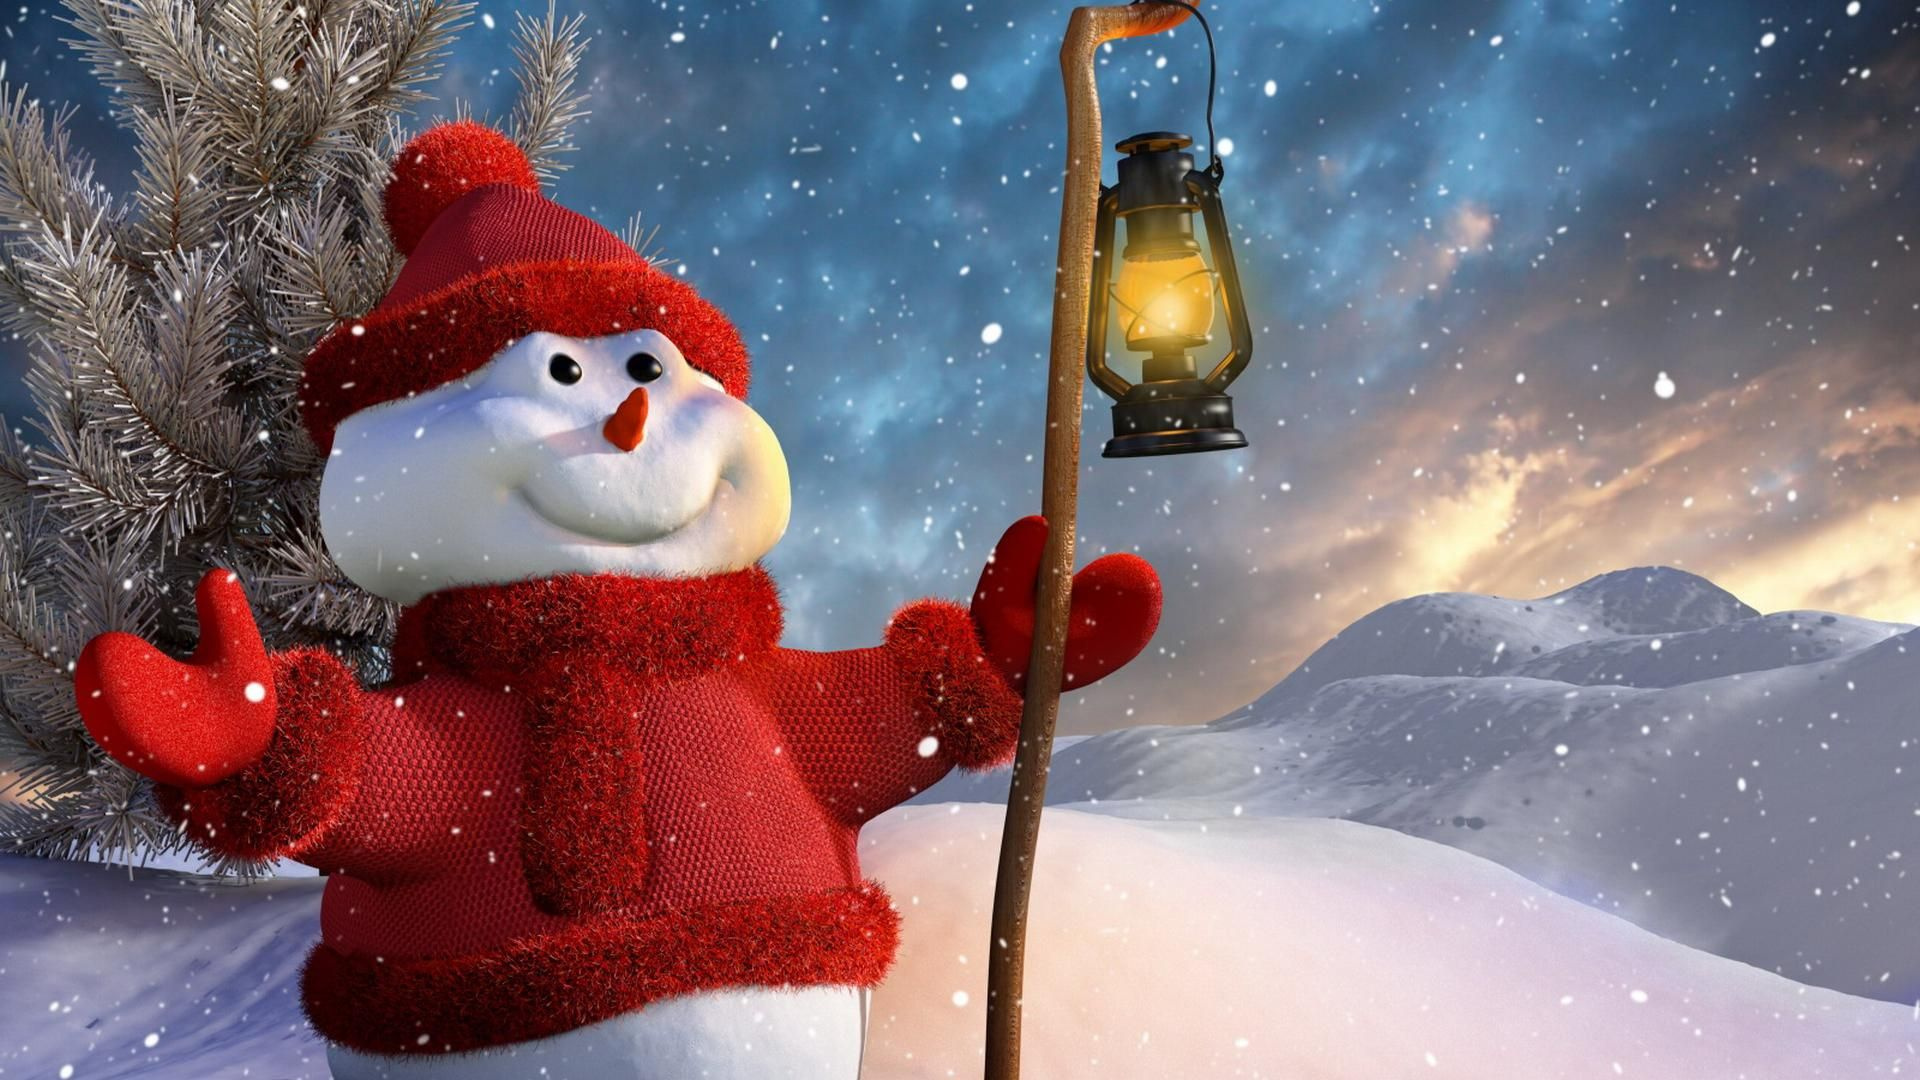 Christmas Winter 1080p HD Wallpaper